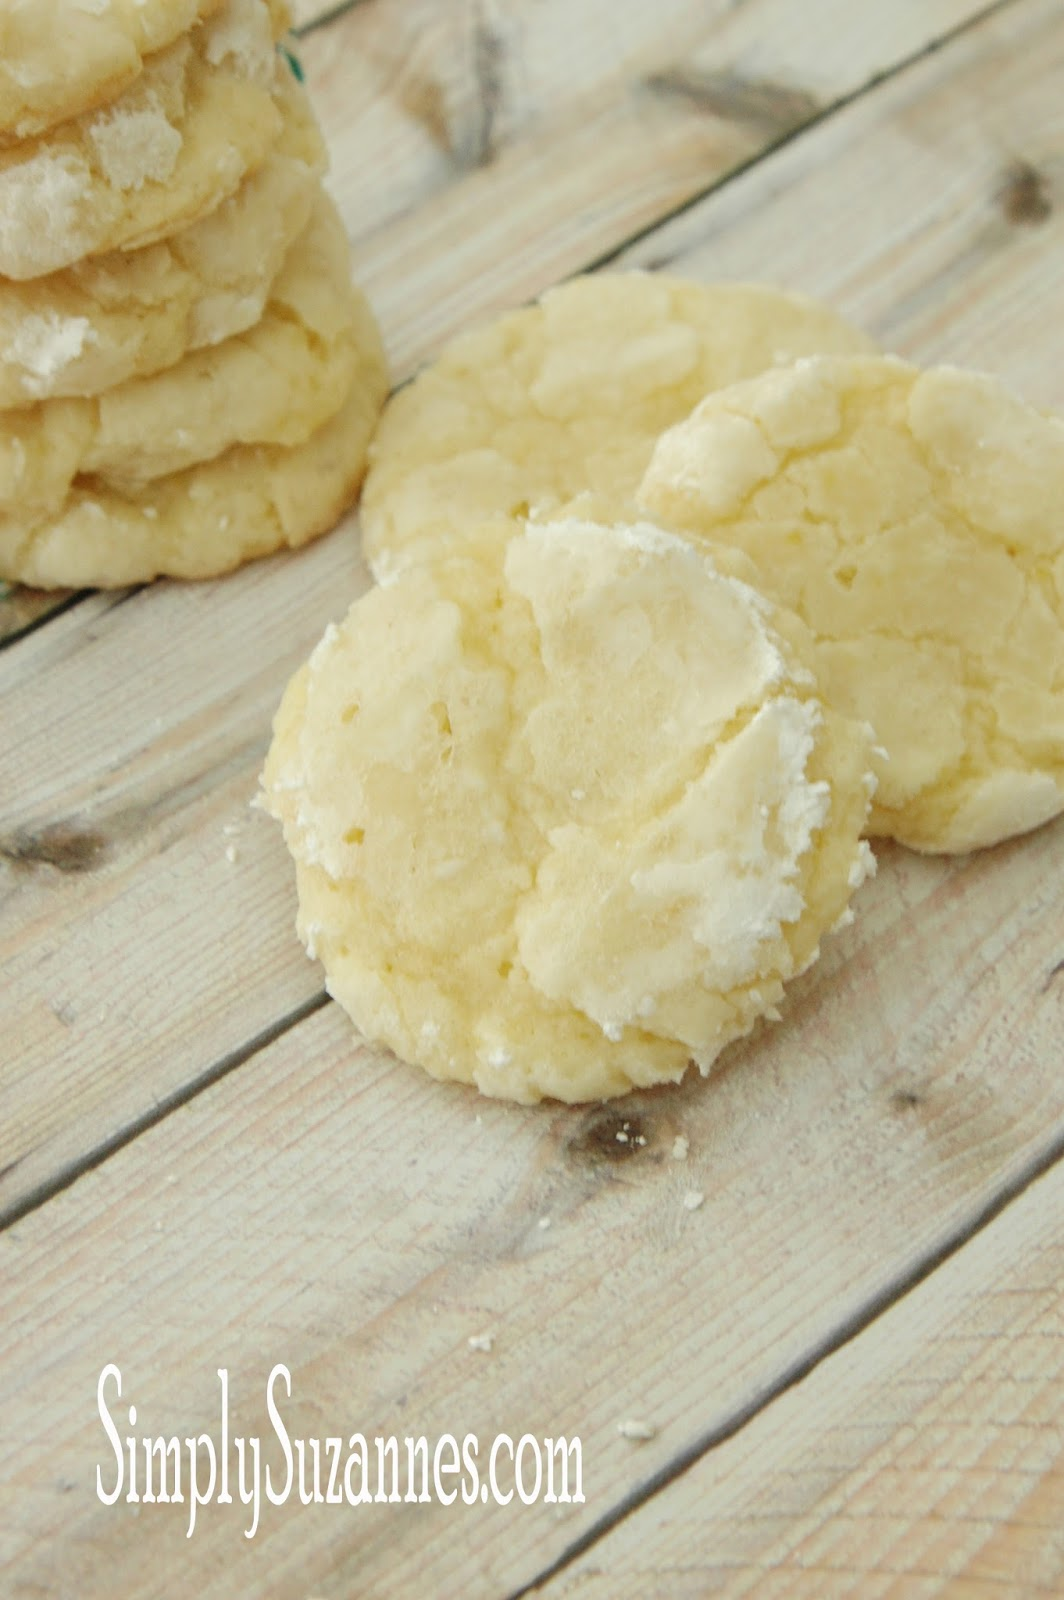 ... that there are a few different Lemon Crinkle Cookie recipes out there